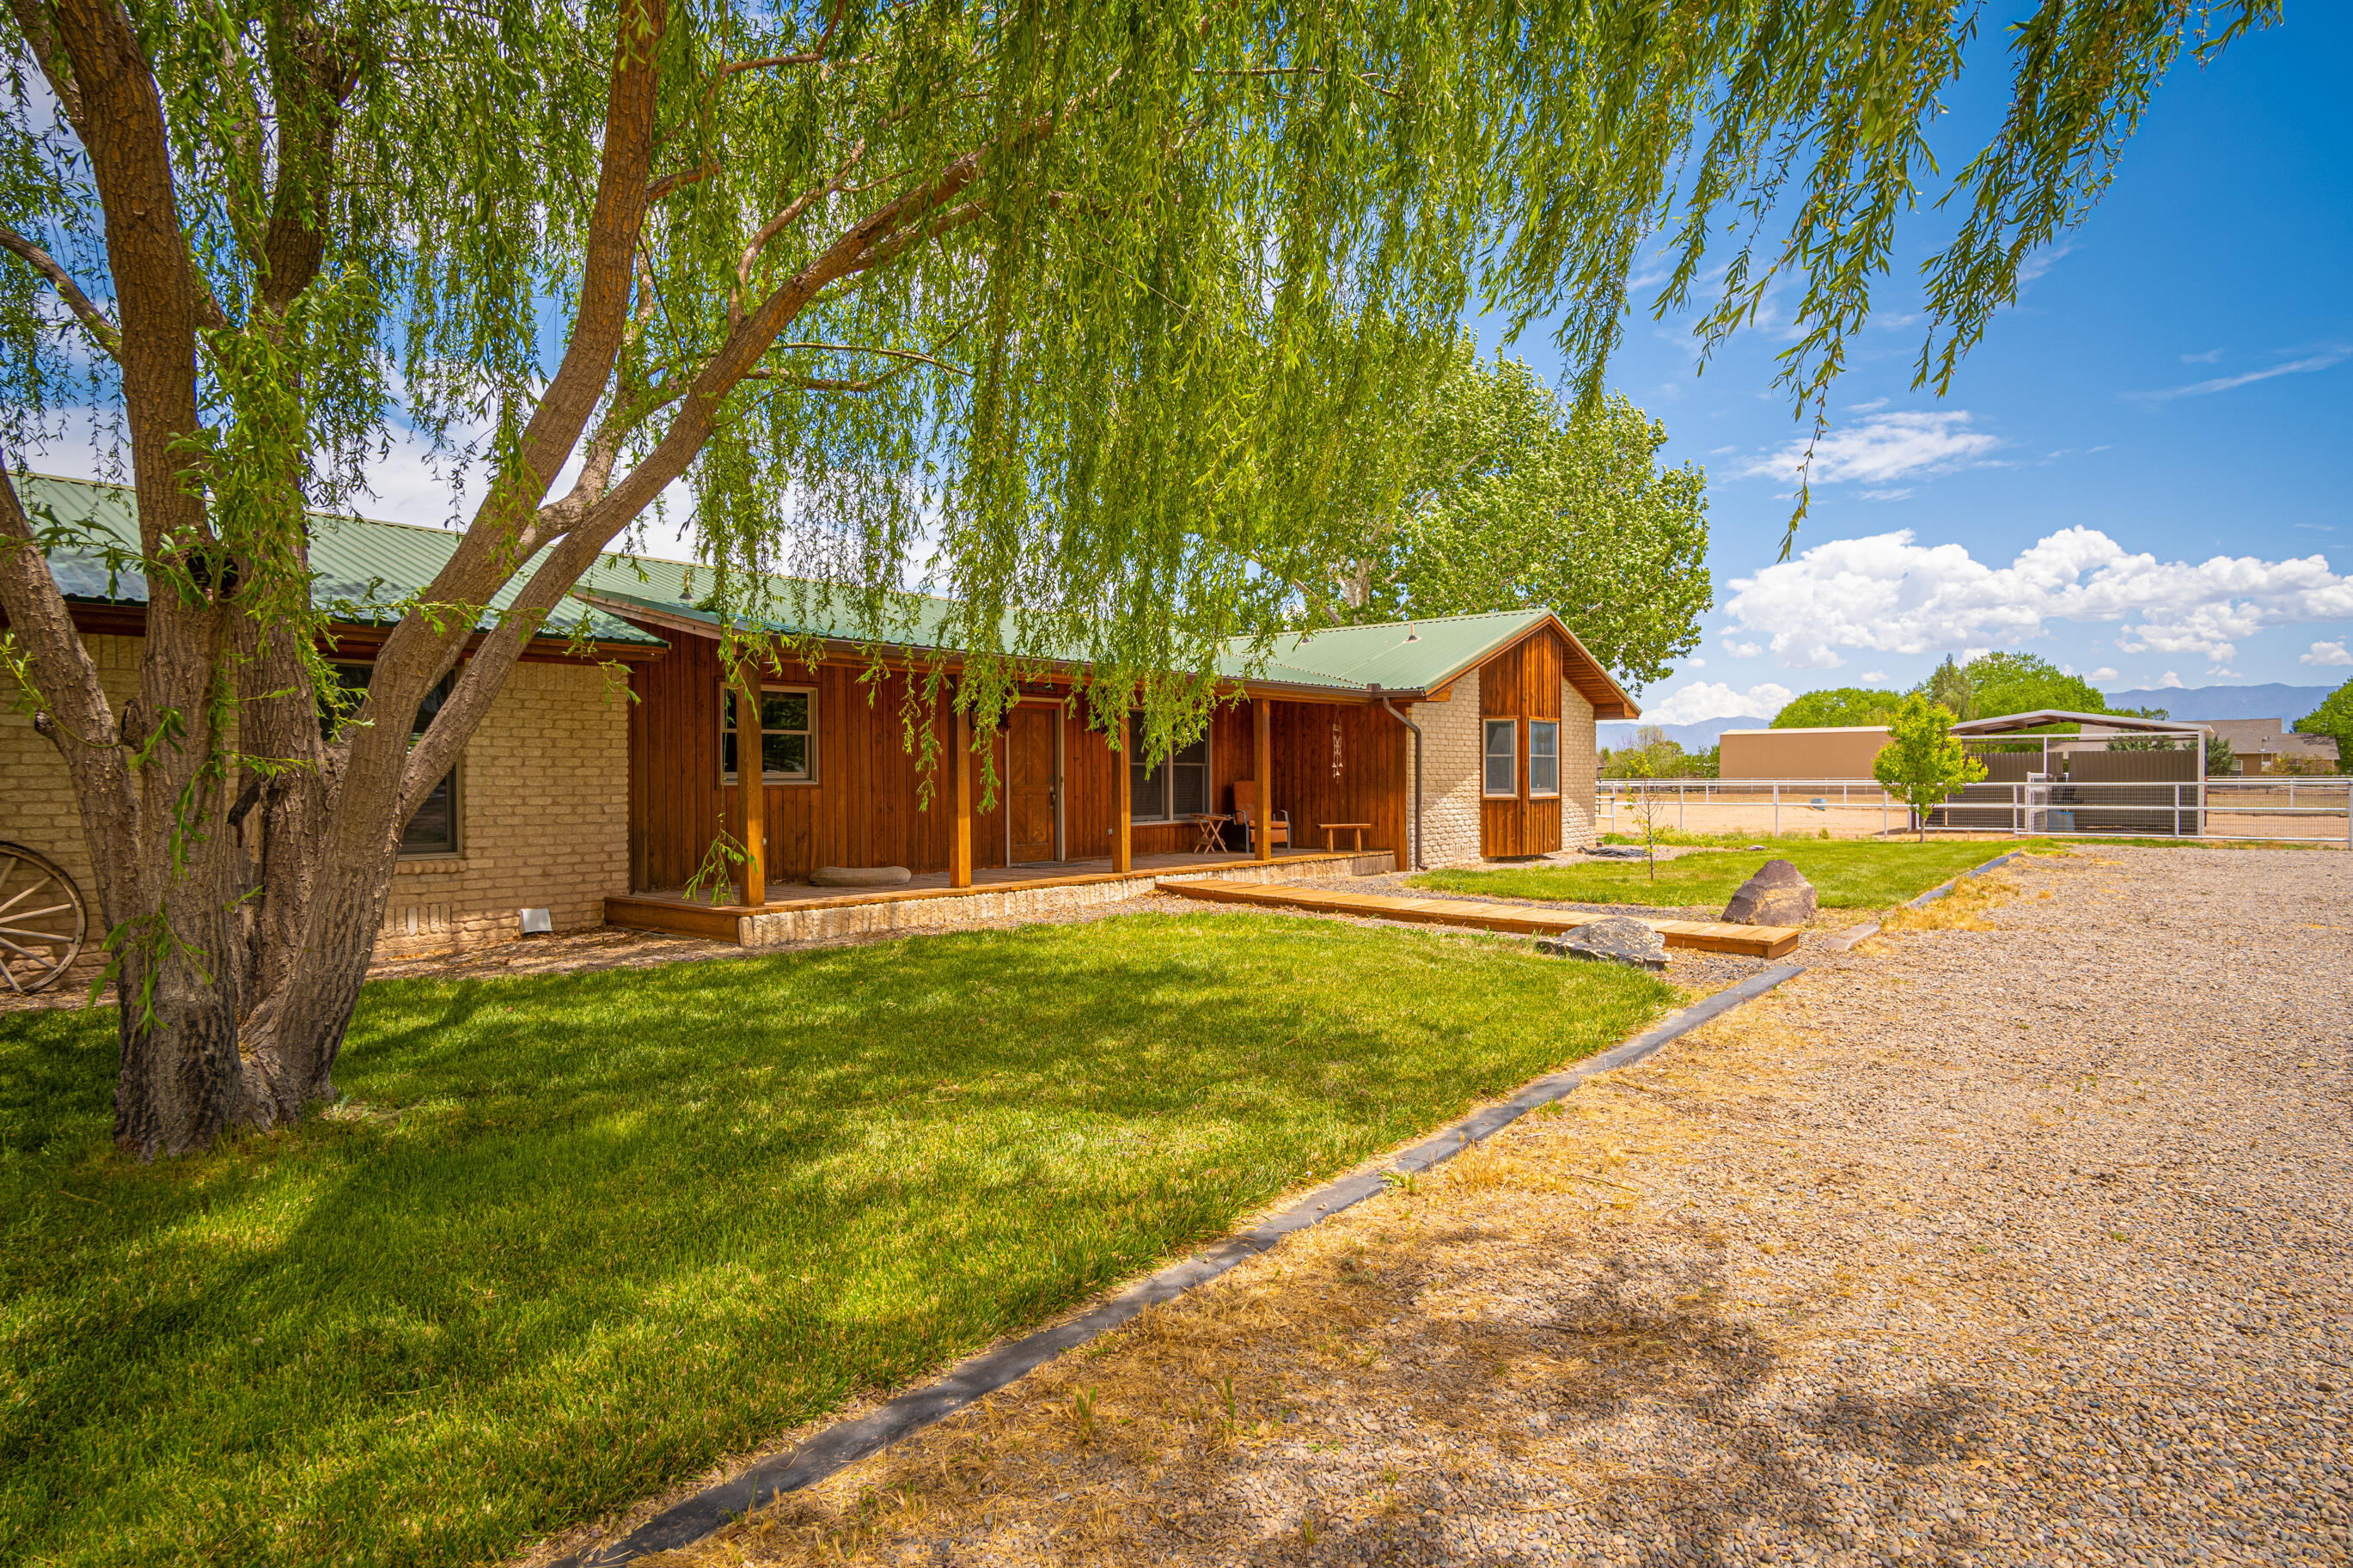 Exceptional horse property on 3 fenced acres. Close to riding trails and the Rio Grande. Beautifully updated, split floorplan, gorgeous open kitchen w/spacious island and custom cabinets. Open floorplan, 2+ large living areas, perfect for entertaining. Master suite has ''spa-like'' bathroom w/large closet. Spacious bedrooms, 2'' wood blinds throughout, tongue and groove beamed ceilings, refrigerated air, HVAC units replaced in 2017, house gutters in 2020, domestic and irrigation Well. Attached 400sq ft tack/saddle room has cedar shiplap walls-could double as home office, hobby room or 4th bdrm. French doors lead to private covered patio with fountain. Outside is a horse lover's playground. Lg barn w/4 stalls, feeders, automatic waters, hay storage, lighting and storage room w/cement floor.